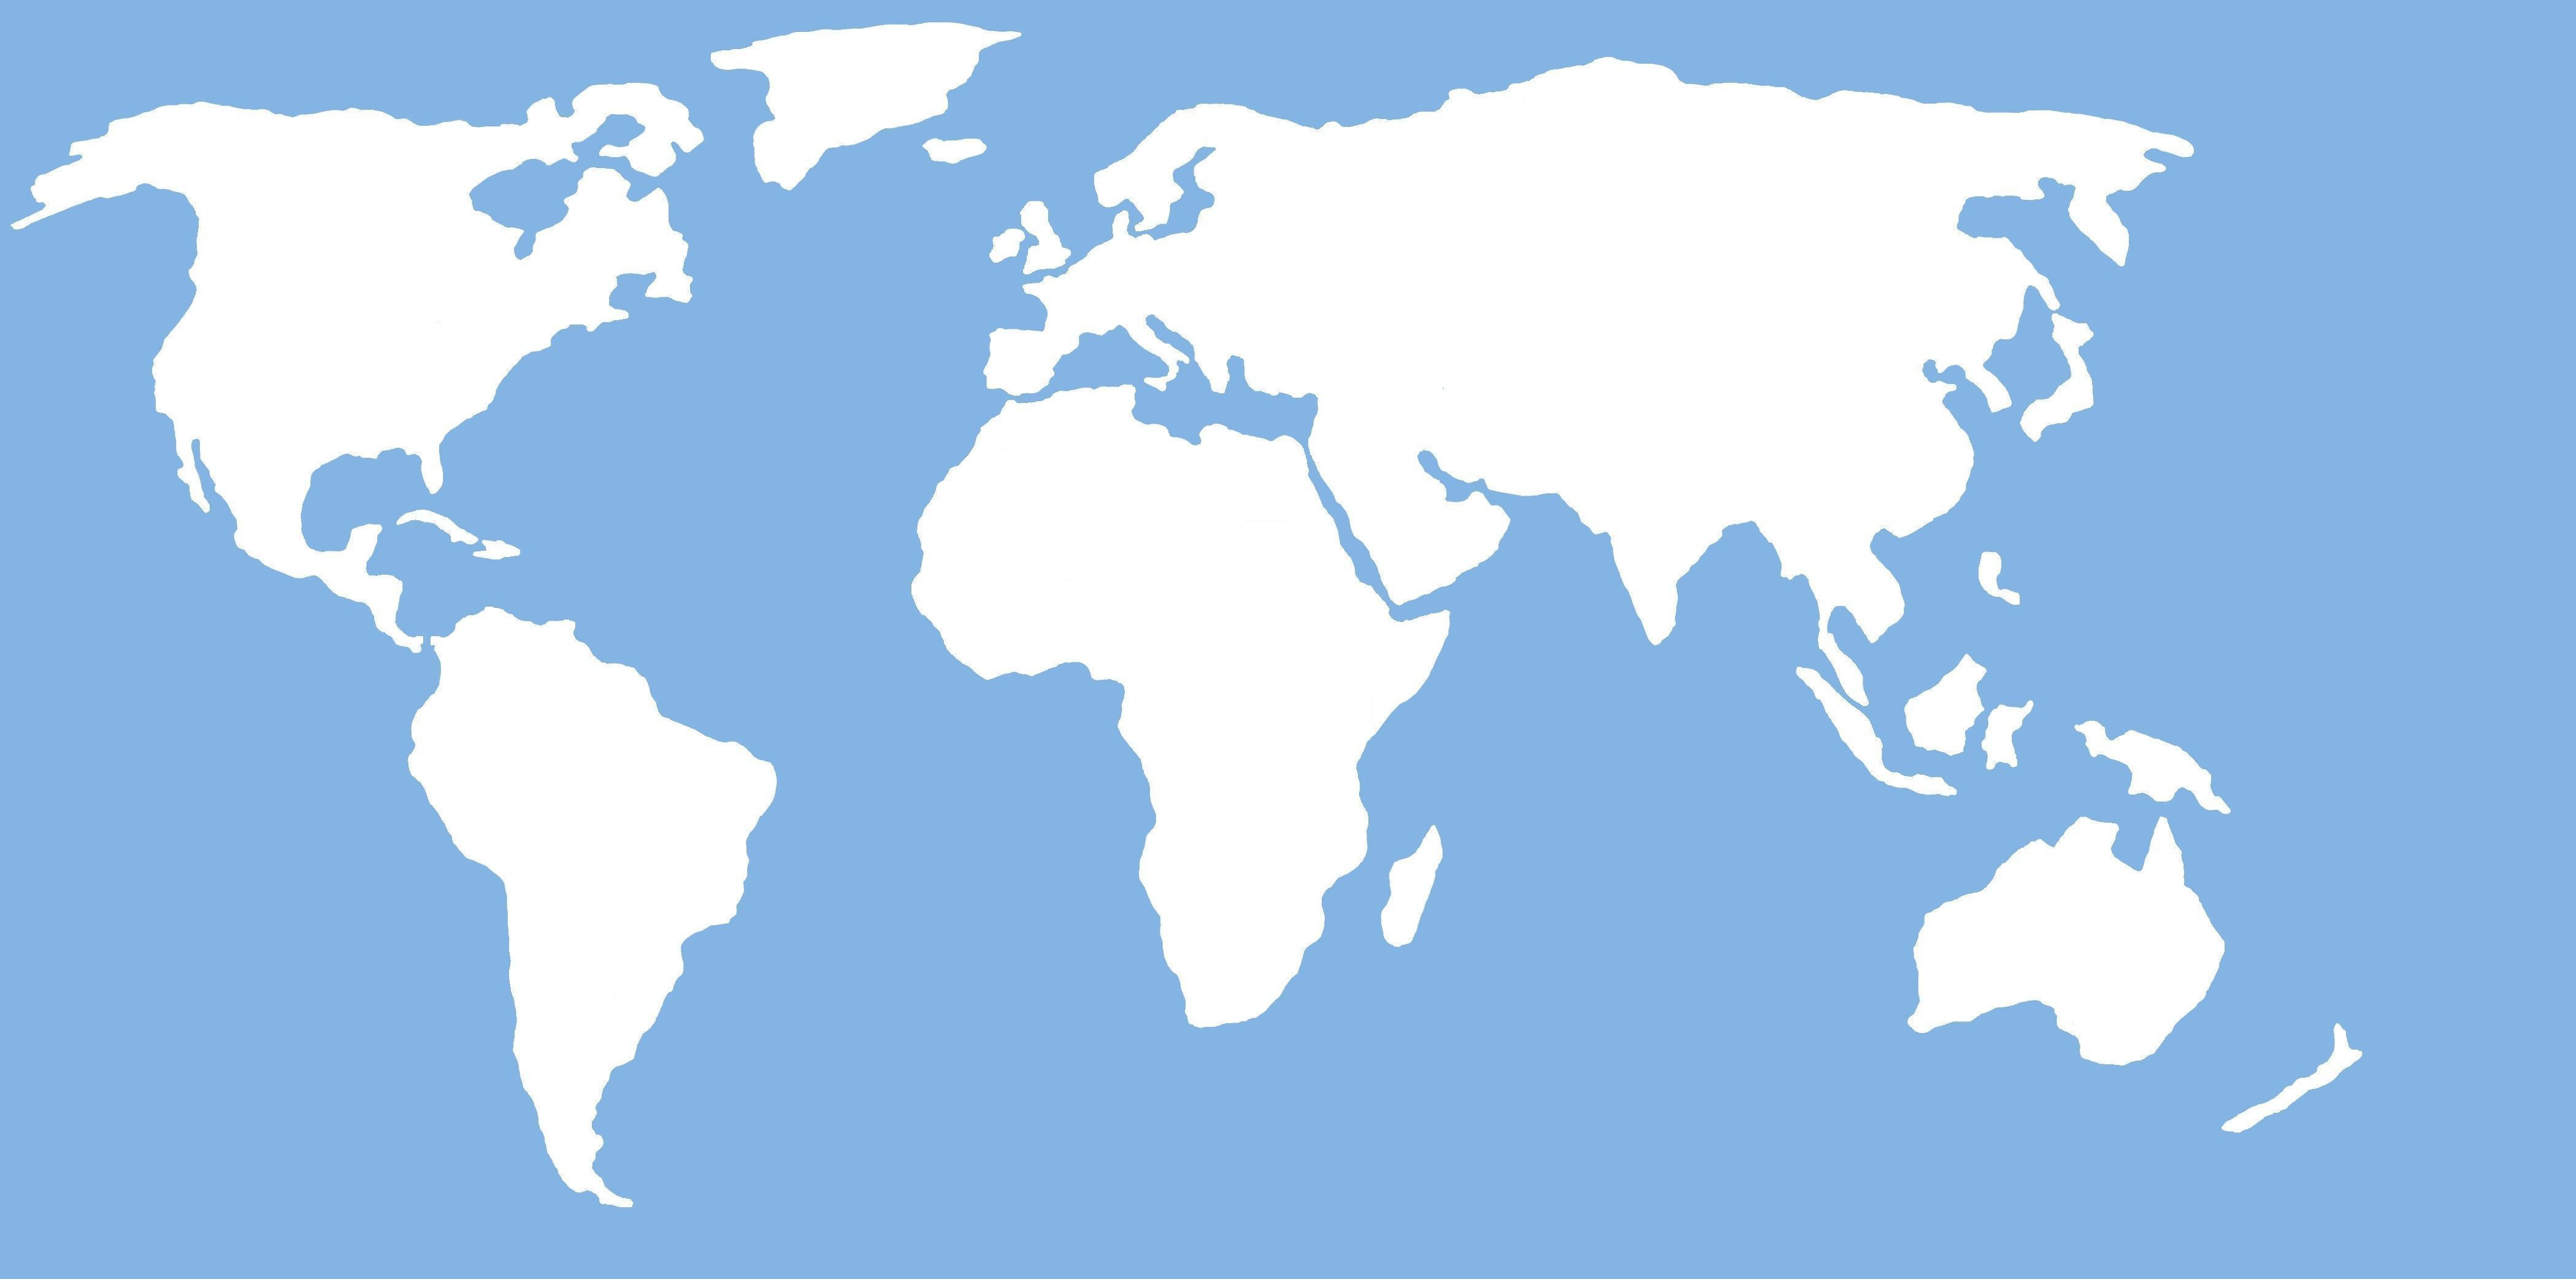 Printable Simple World Map Outline World Map Logo Vector Earth Map Simple Vector World Map Vector Download Simple Map Vector World Map Editable Image #worldmapmural Printable Simple World Map Outline World Map Logo Vector Earth Map Simple Vector World Map Vector Download Simple Map Vector World Map Editable Image #worldmapmural Printable Simple World Map Outline World Map Logo Vector Earth Map Simple Vector World Map Vector Download Simple Map Vector World Map Editable Image #worldmapmural Print #worldmapmural